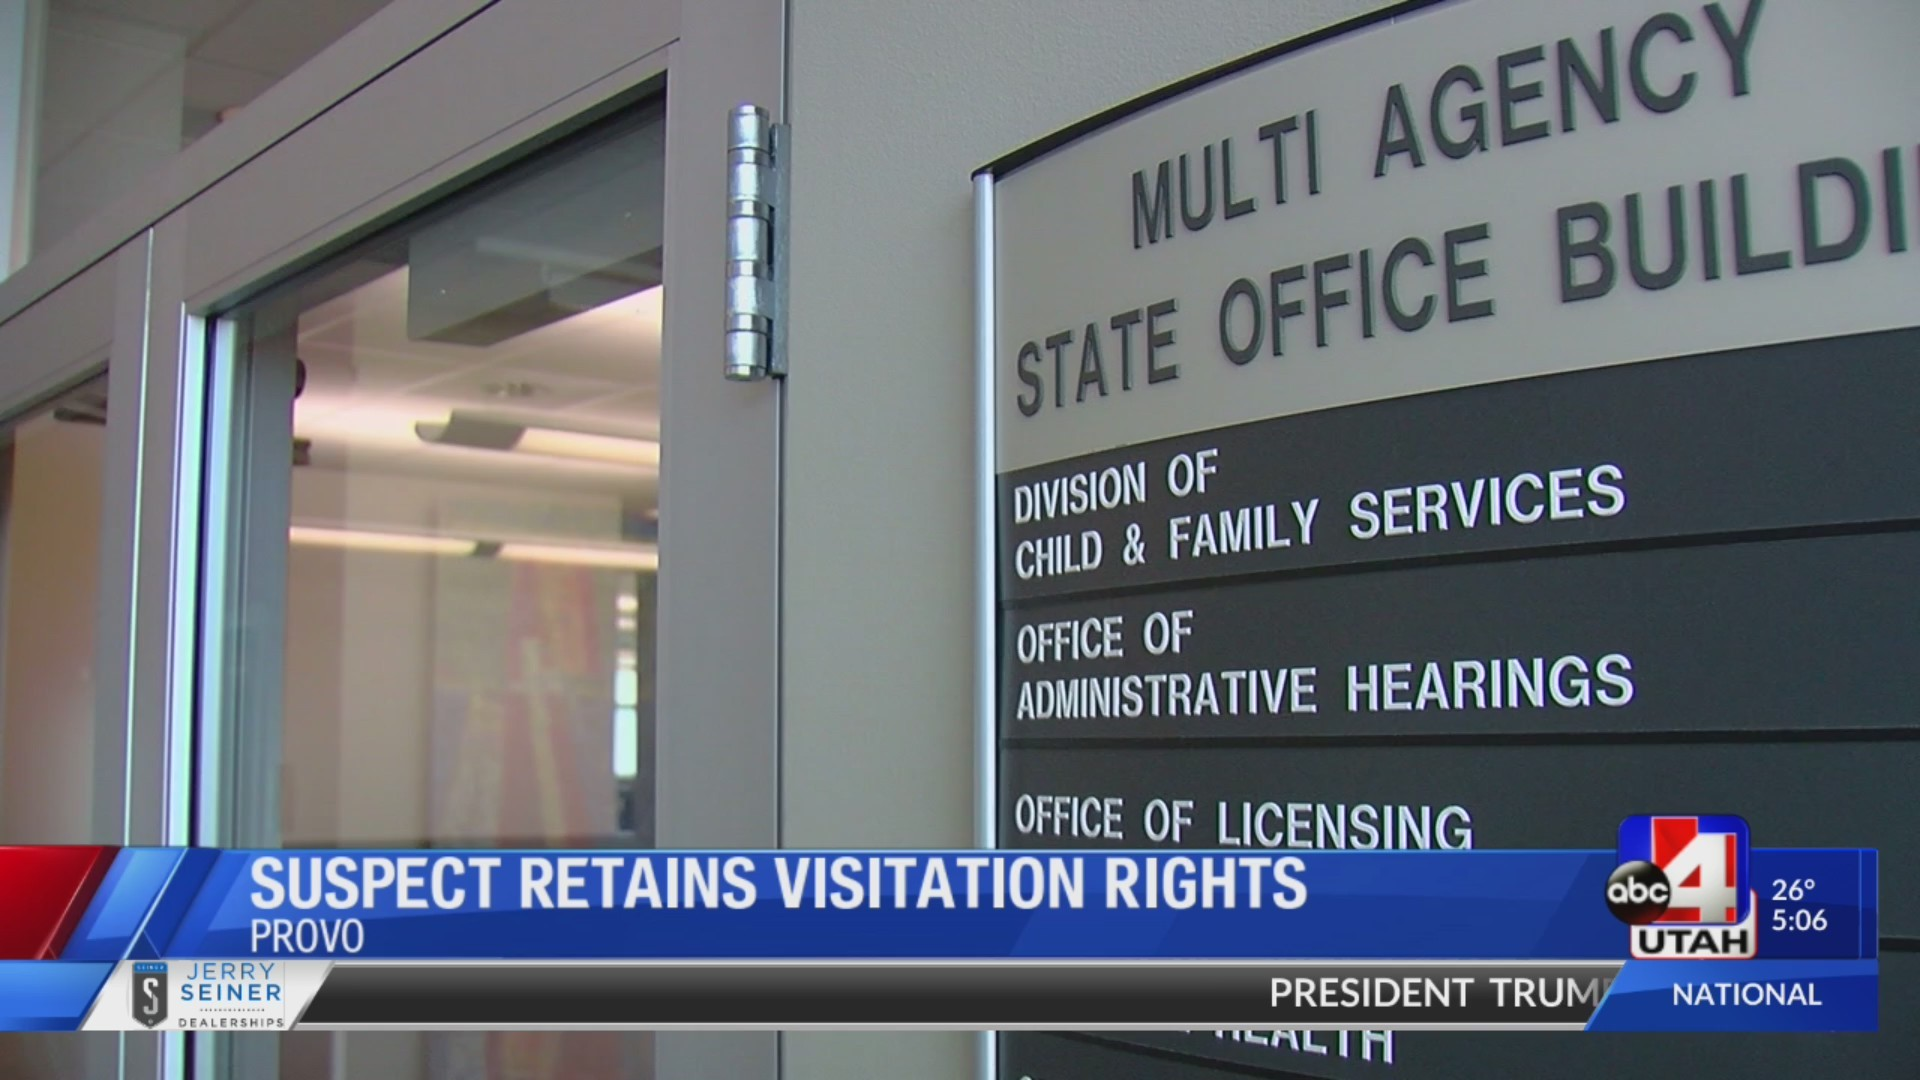 Suspect retains visitation rights; is allowed to see alleged victim days after arrest